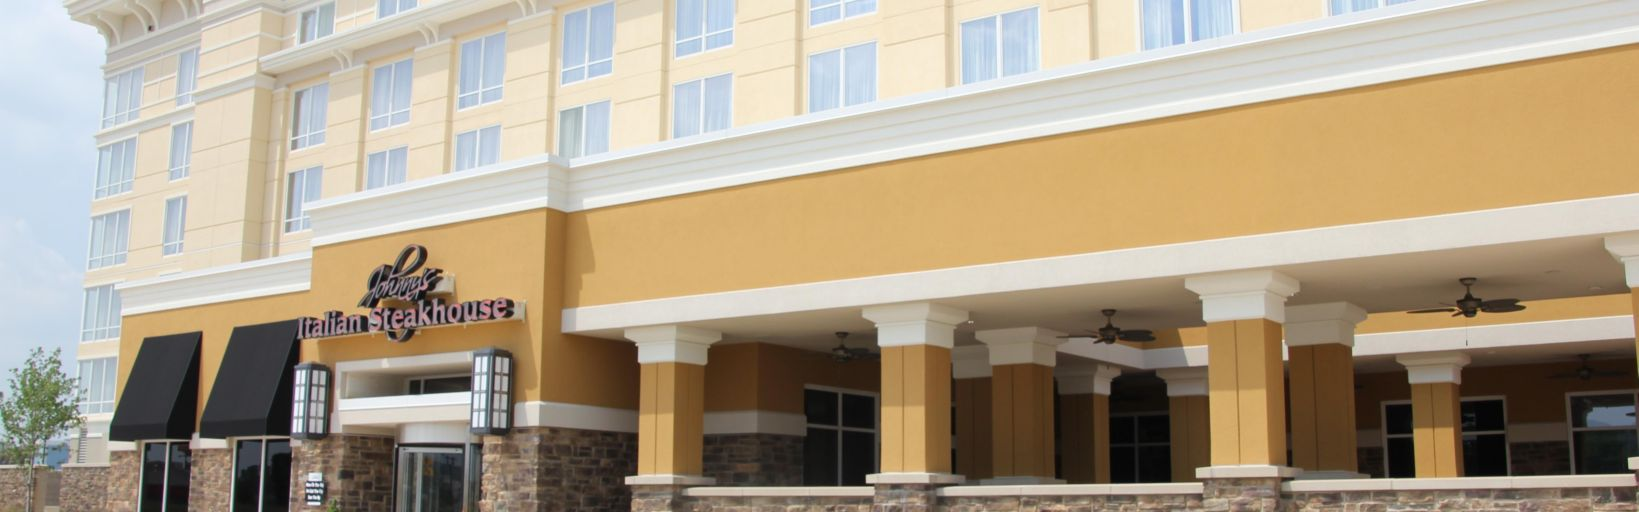 East Peoria Il Exterior Feature Front Desk Hotel